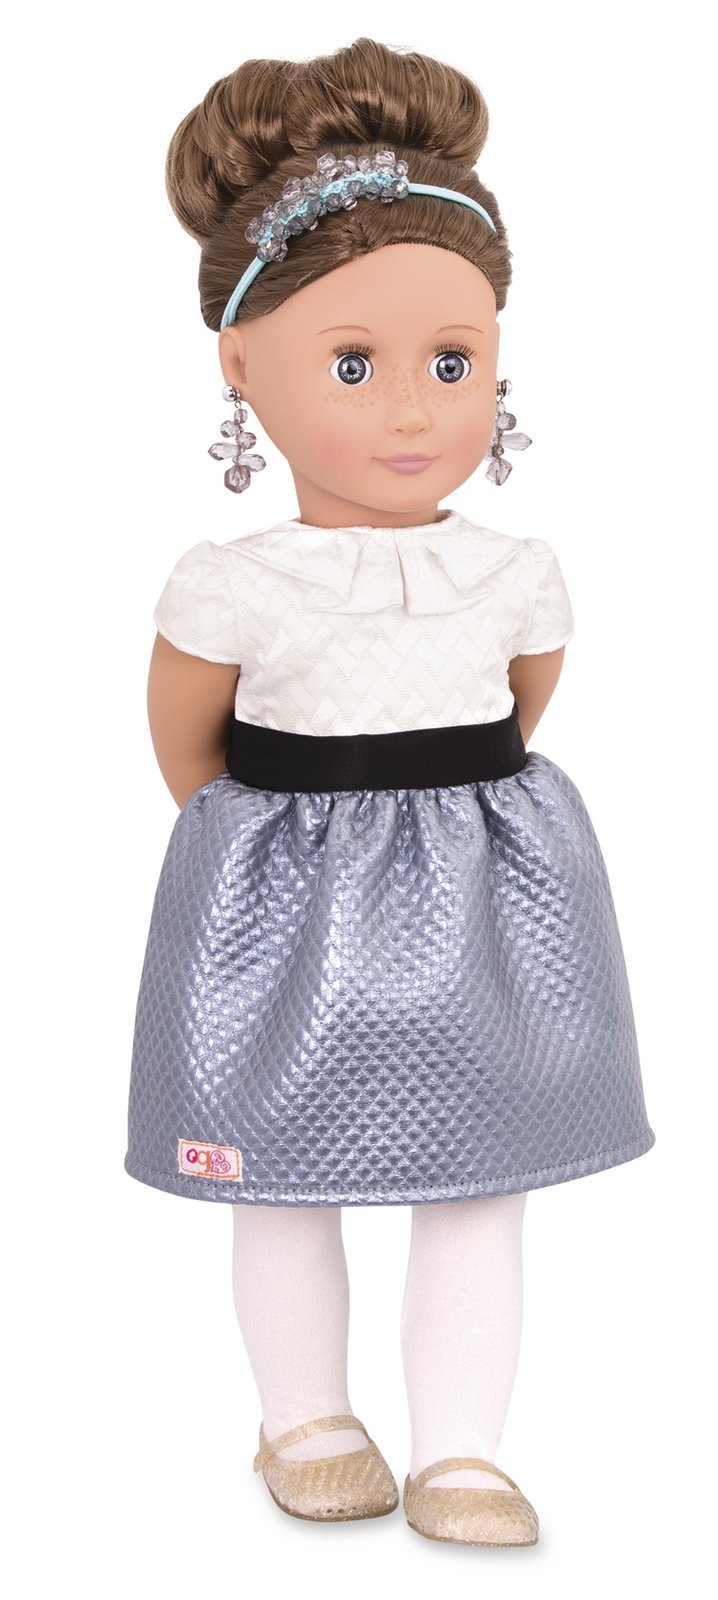 "Our Generation: 18"" Jewellery Doll - Aliane image"